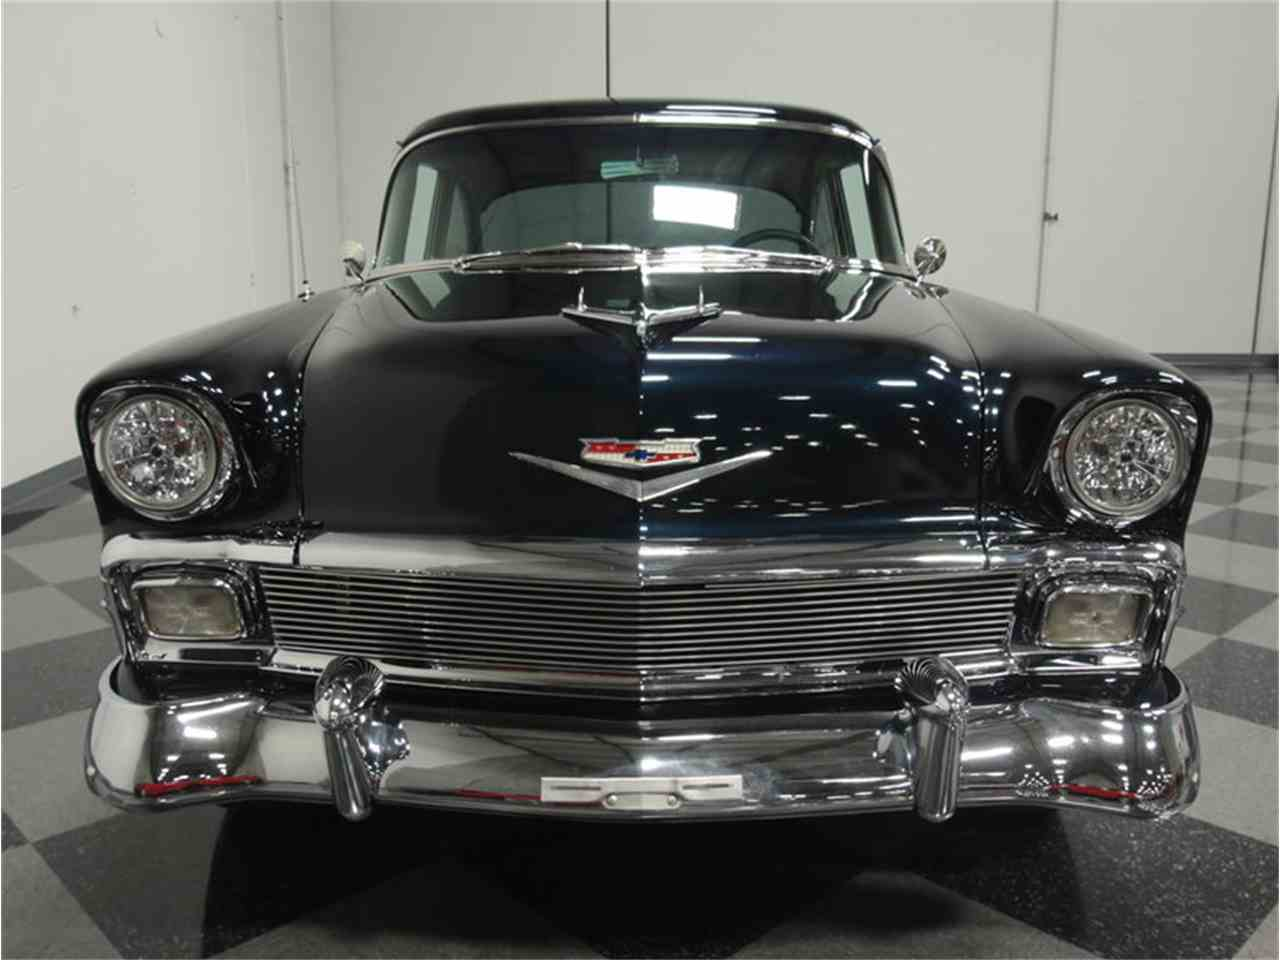 1956 chevrolet bel air for sale classic car liquidators - 1956 Chevrolet Bel Air For Sale Cc 891725